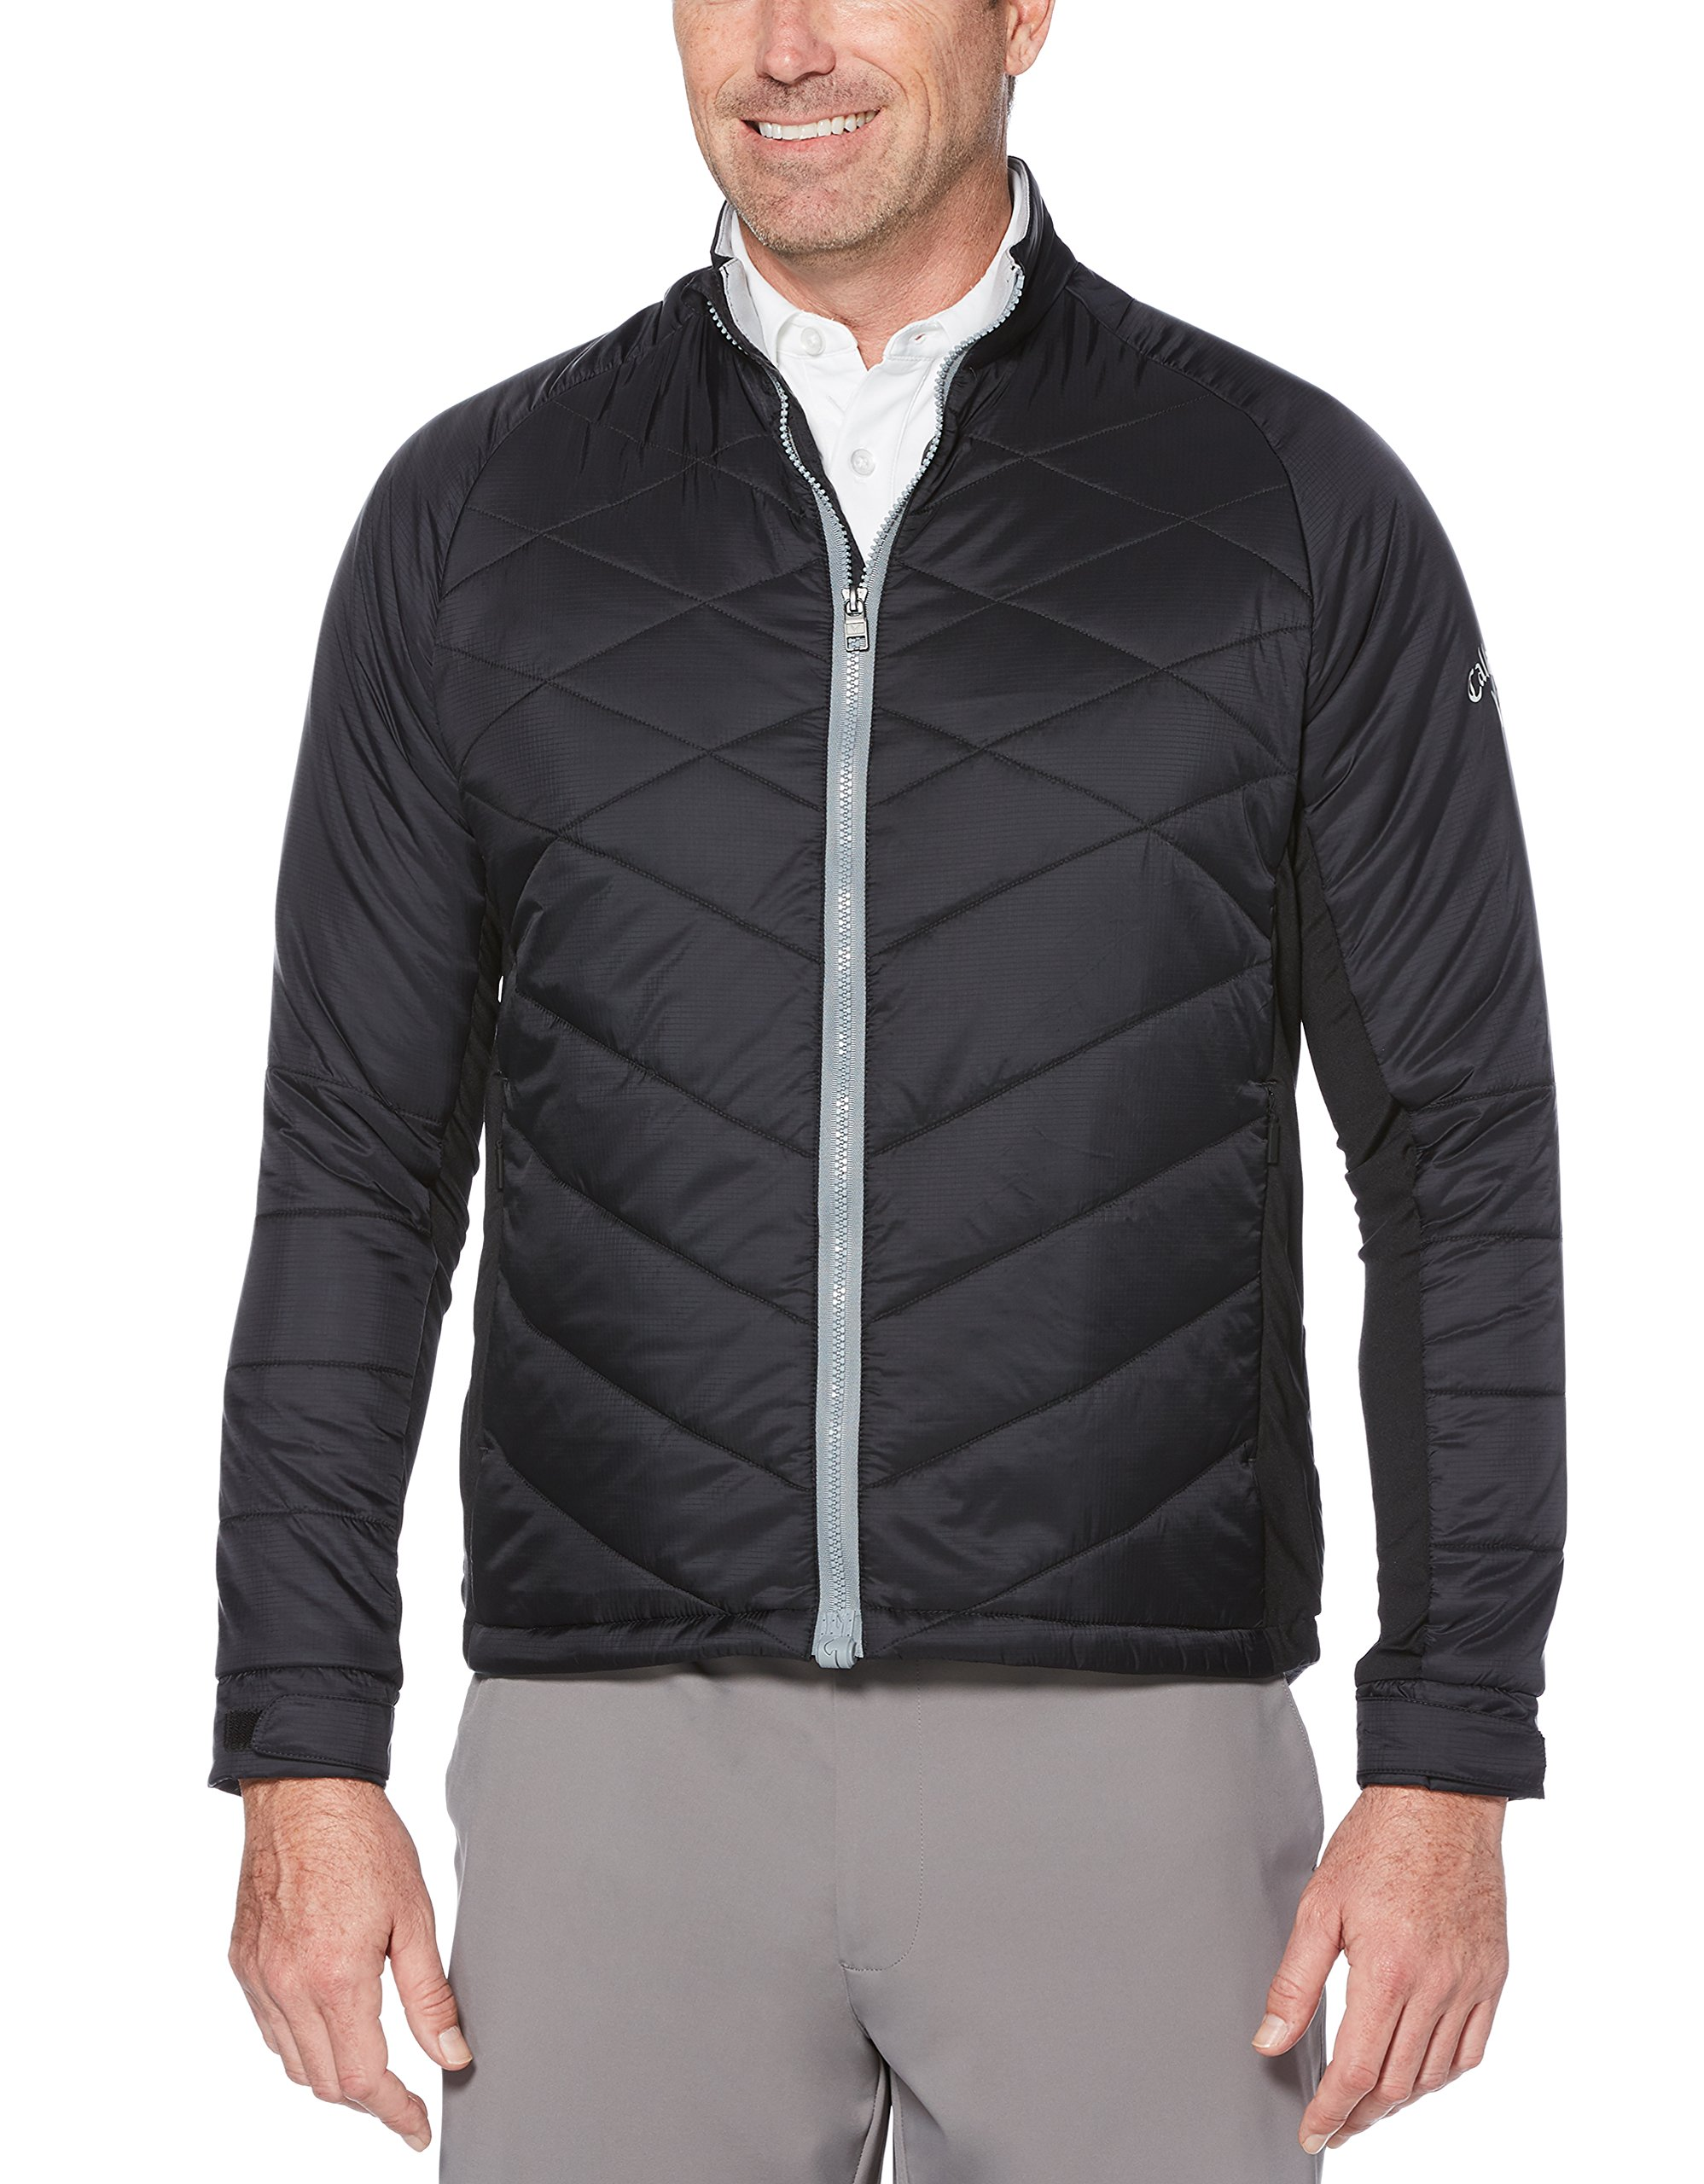 Callaway Men's Thermal Performance Quilted Golf Jacket, Caviar, 3X-Large by Callaway